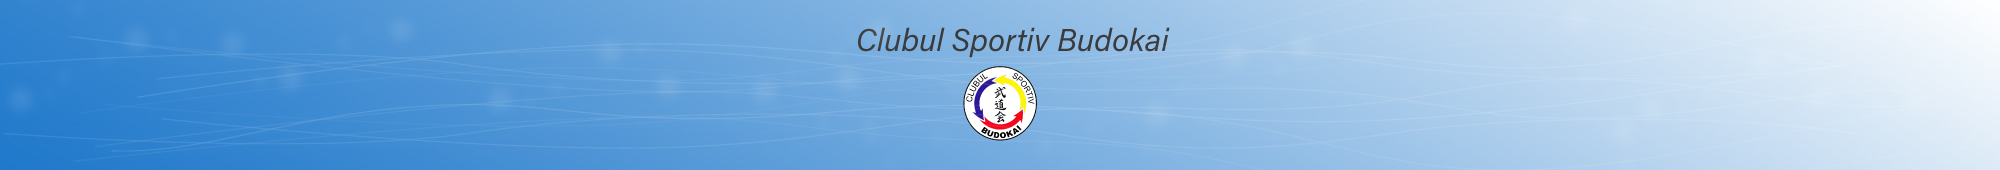 Clubul Sportiv Budokai